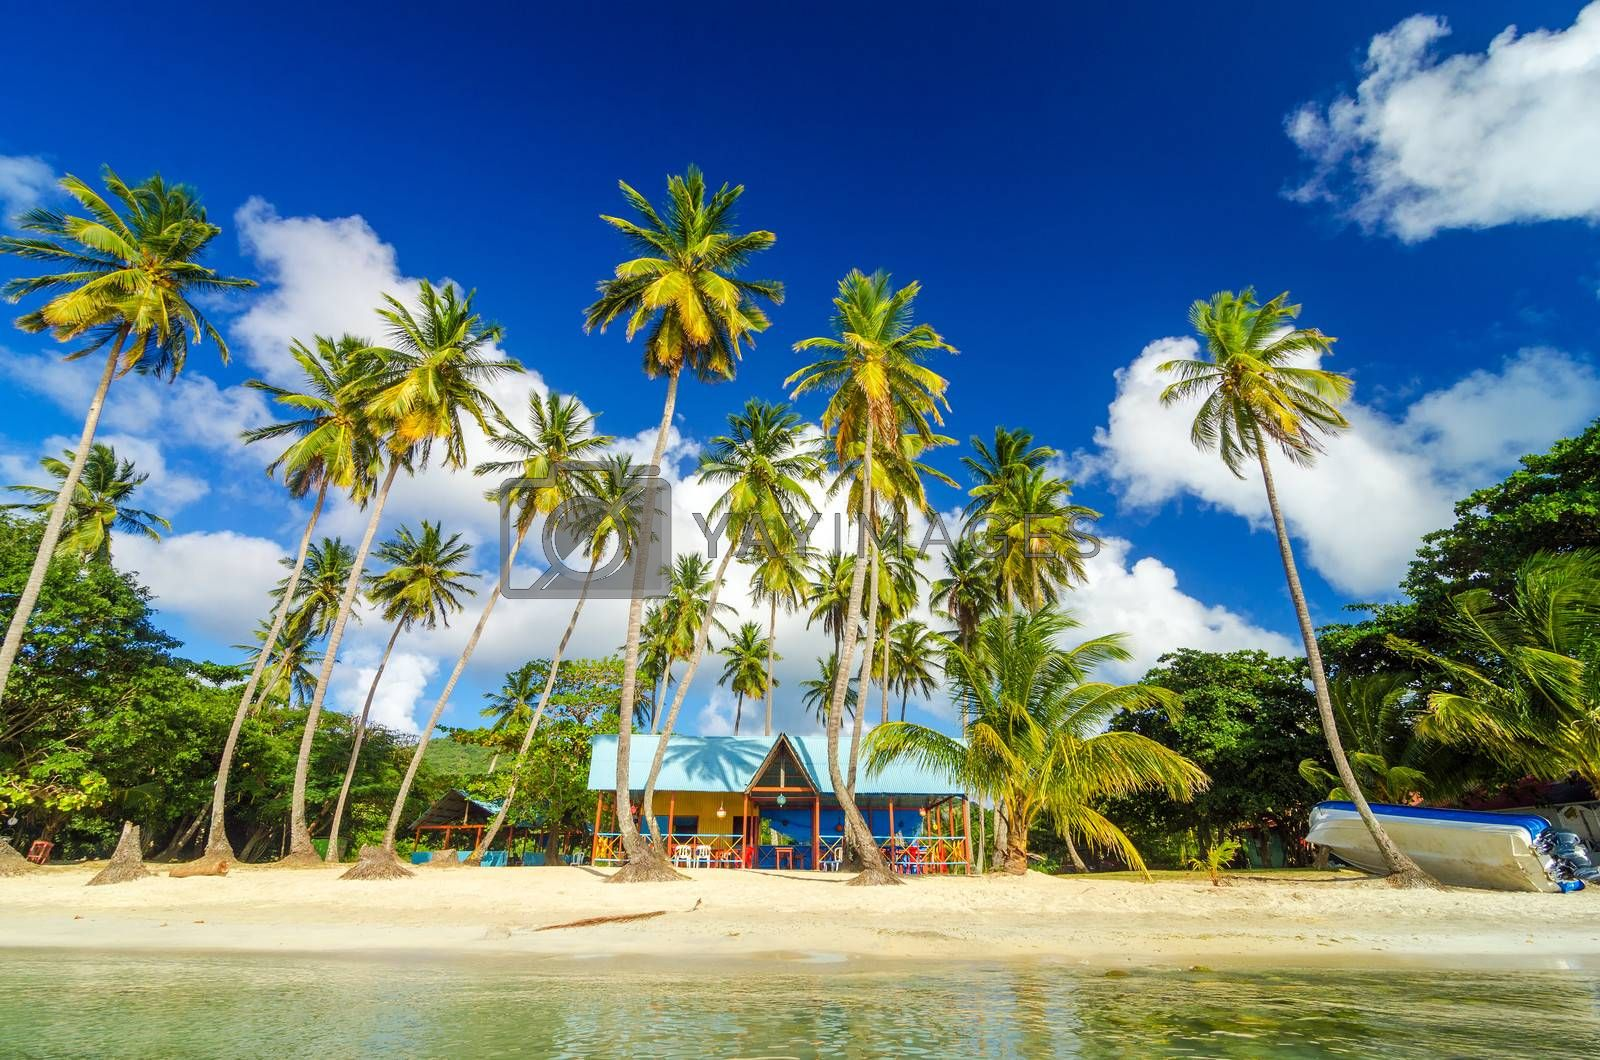 Colorful shack on a beach surrounded by palm trees in San Andres y Providencia, Colombia